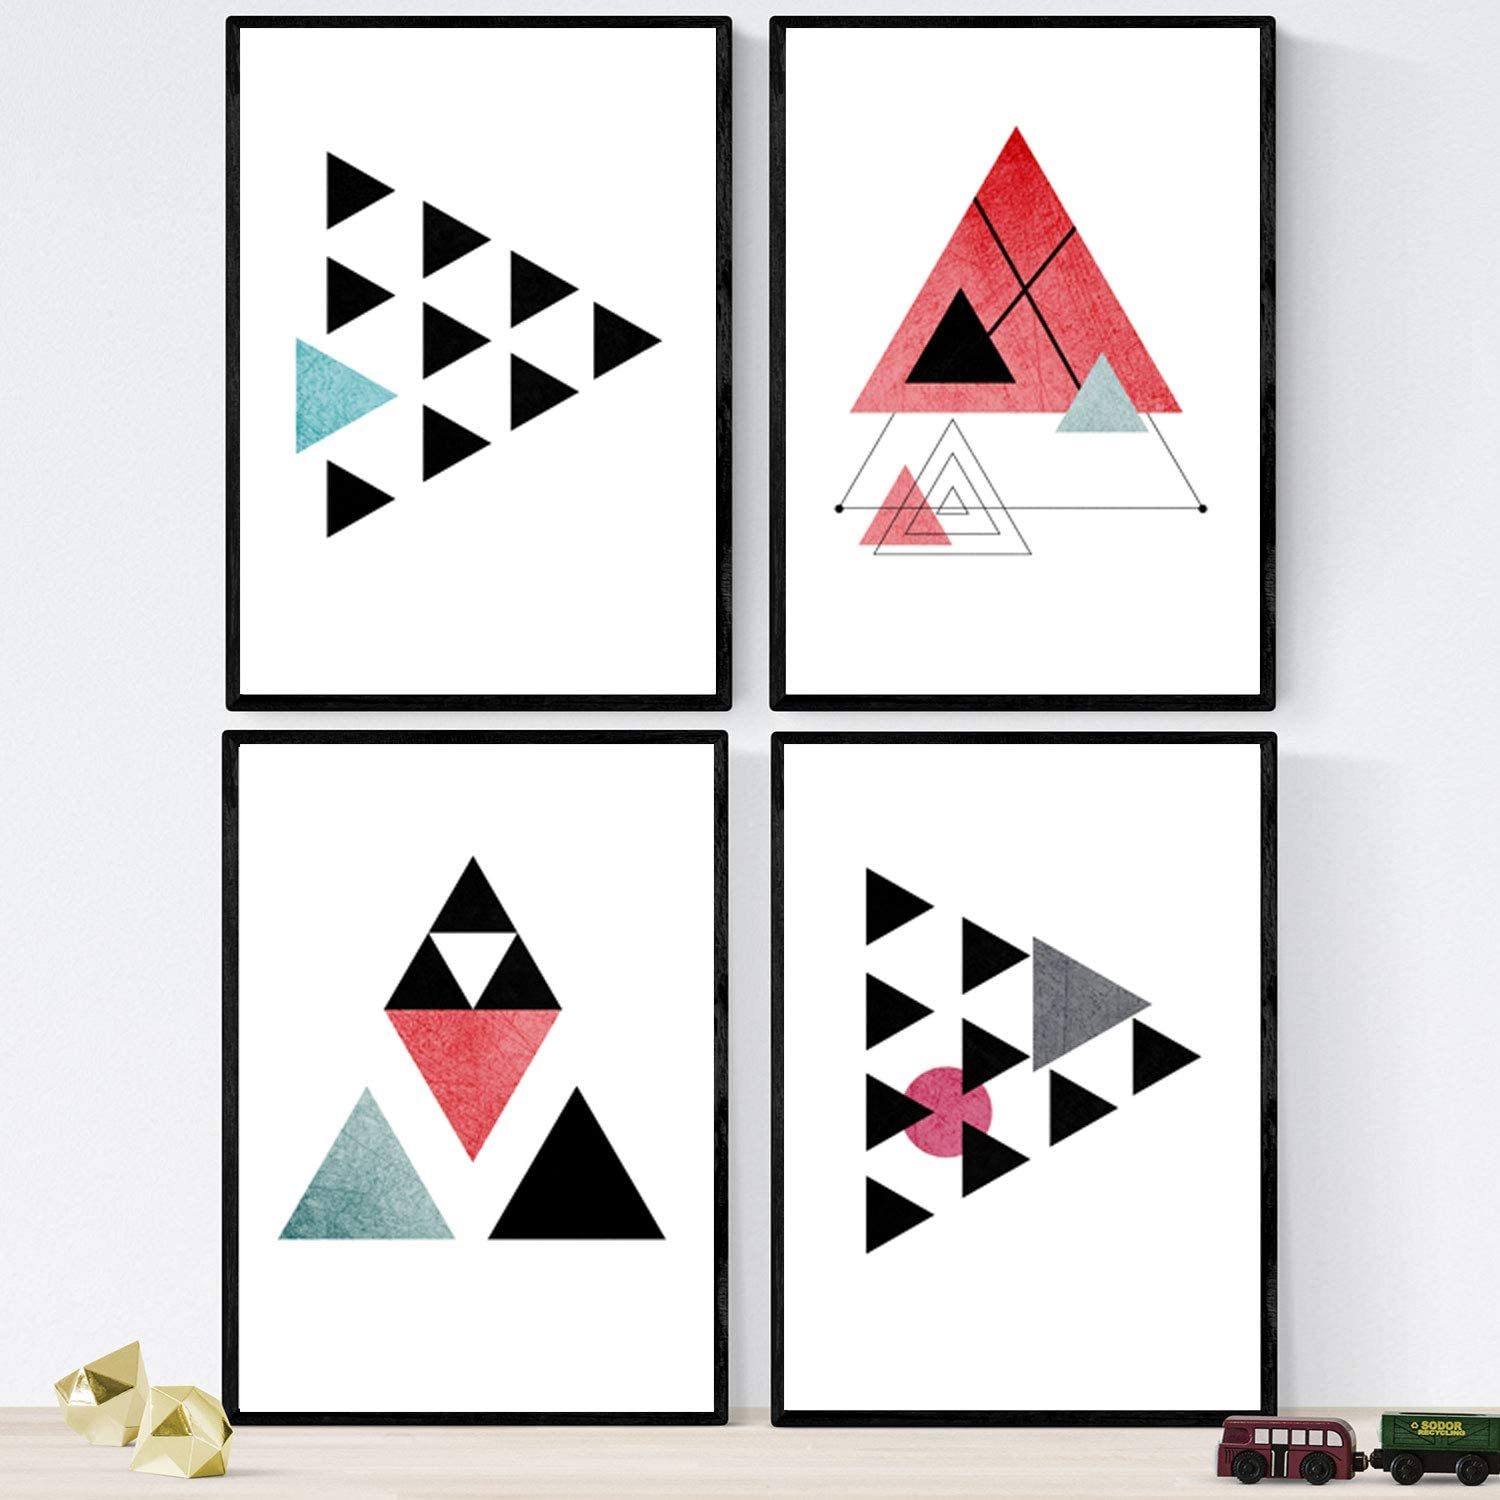 Nacnic Prints Geometric Style Strawberries - Set of 4-250g Paper - Beautiful Poster Painting for Home Office Living Room